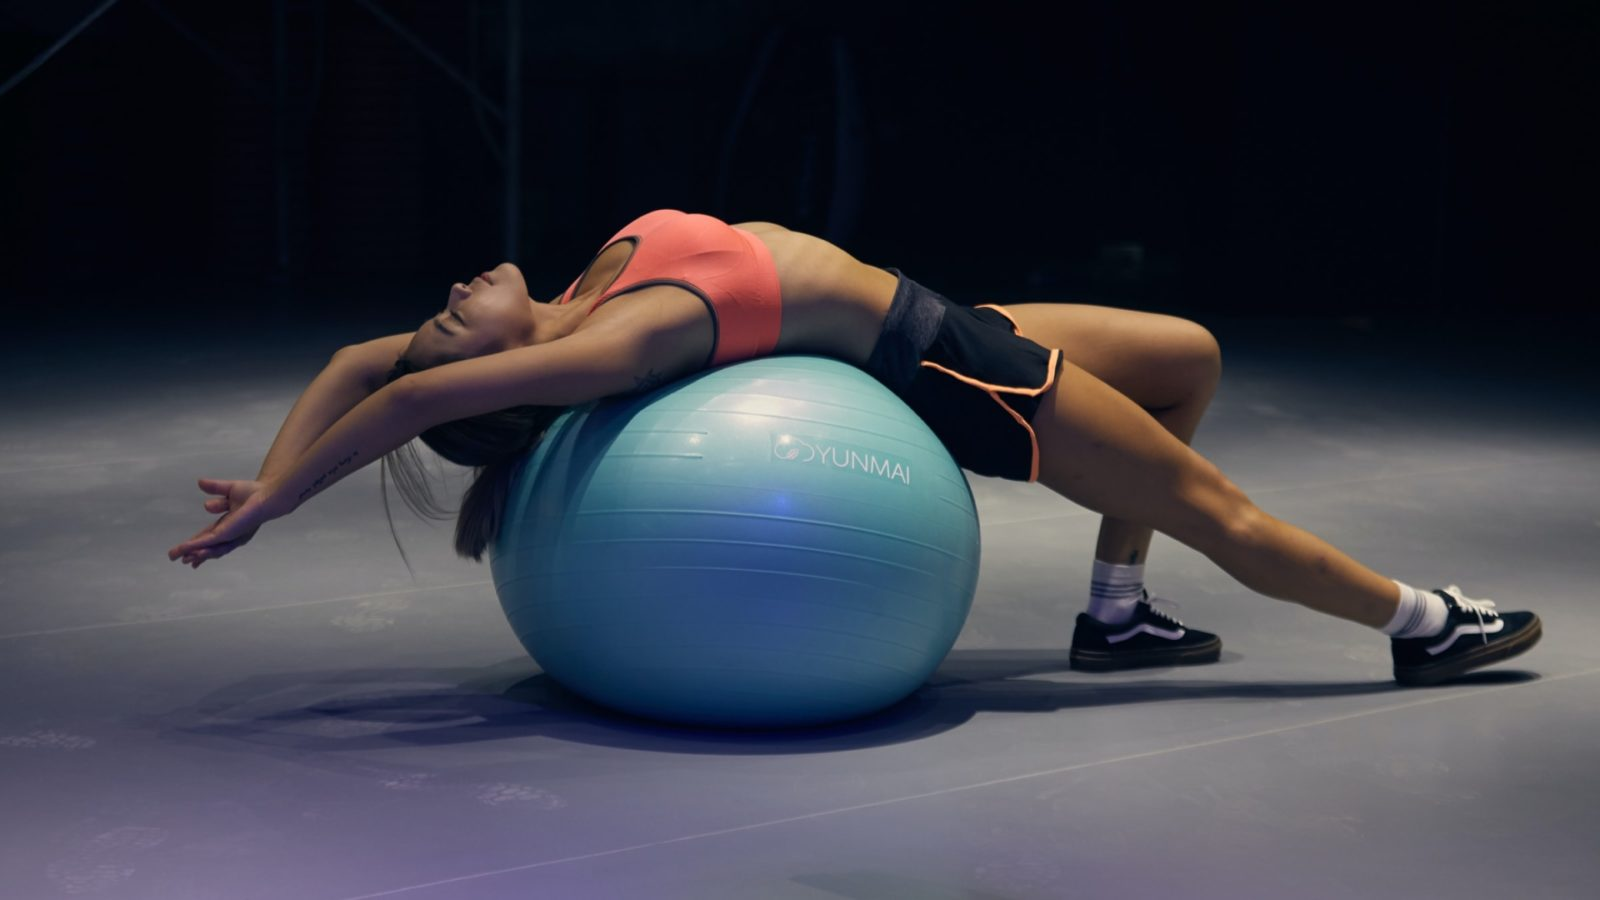 10 of the best online workout subscription services to try in 2021